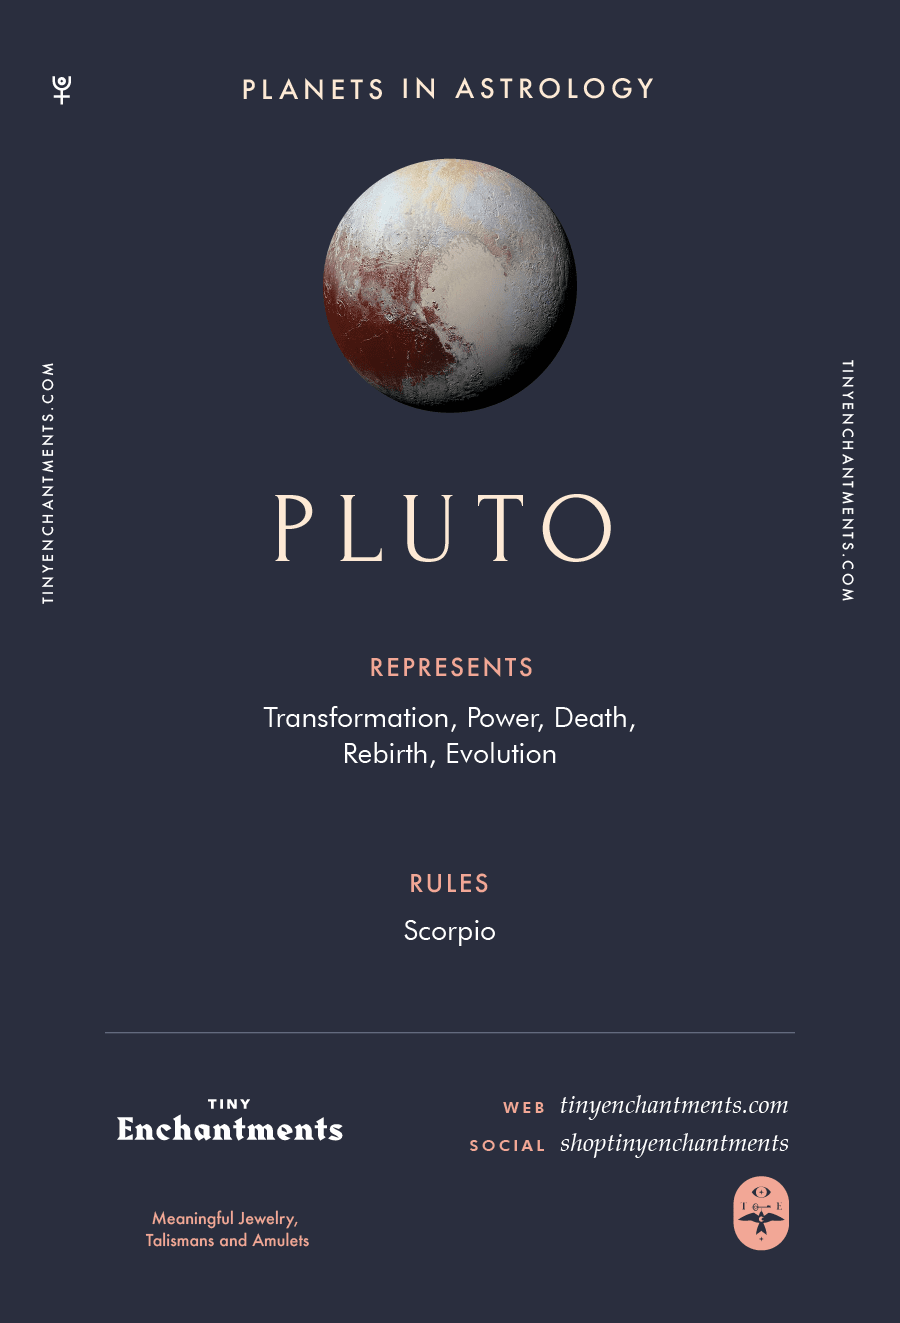 30a7e3ac1 Pluto Sign in Astrology - Planet Meaning, Zodiac, Symbolism,  Characteristics Infographic - zodiac, astrology, horoscopes, magic, wicca,  occult, witchy, ...